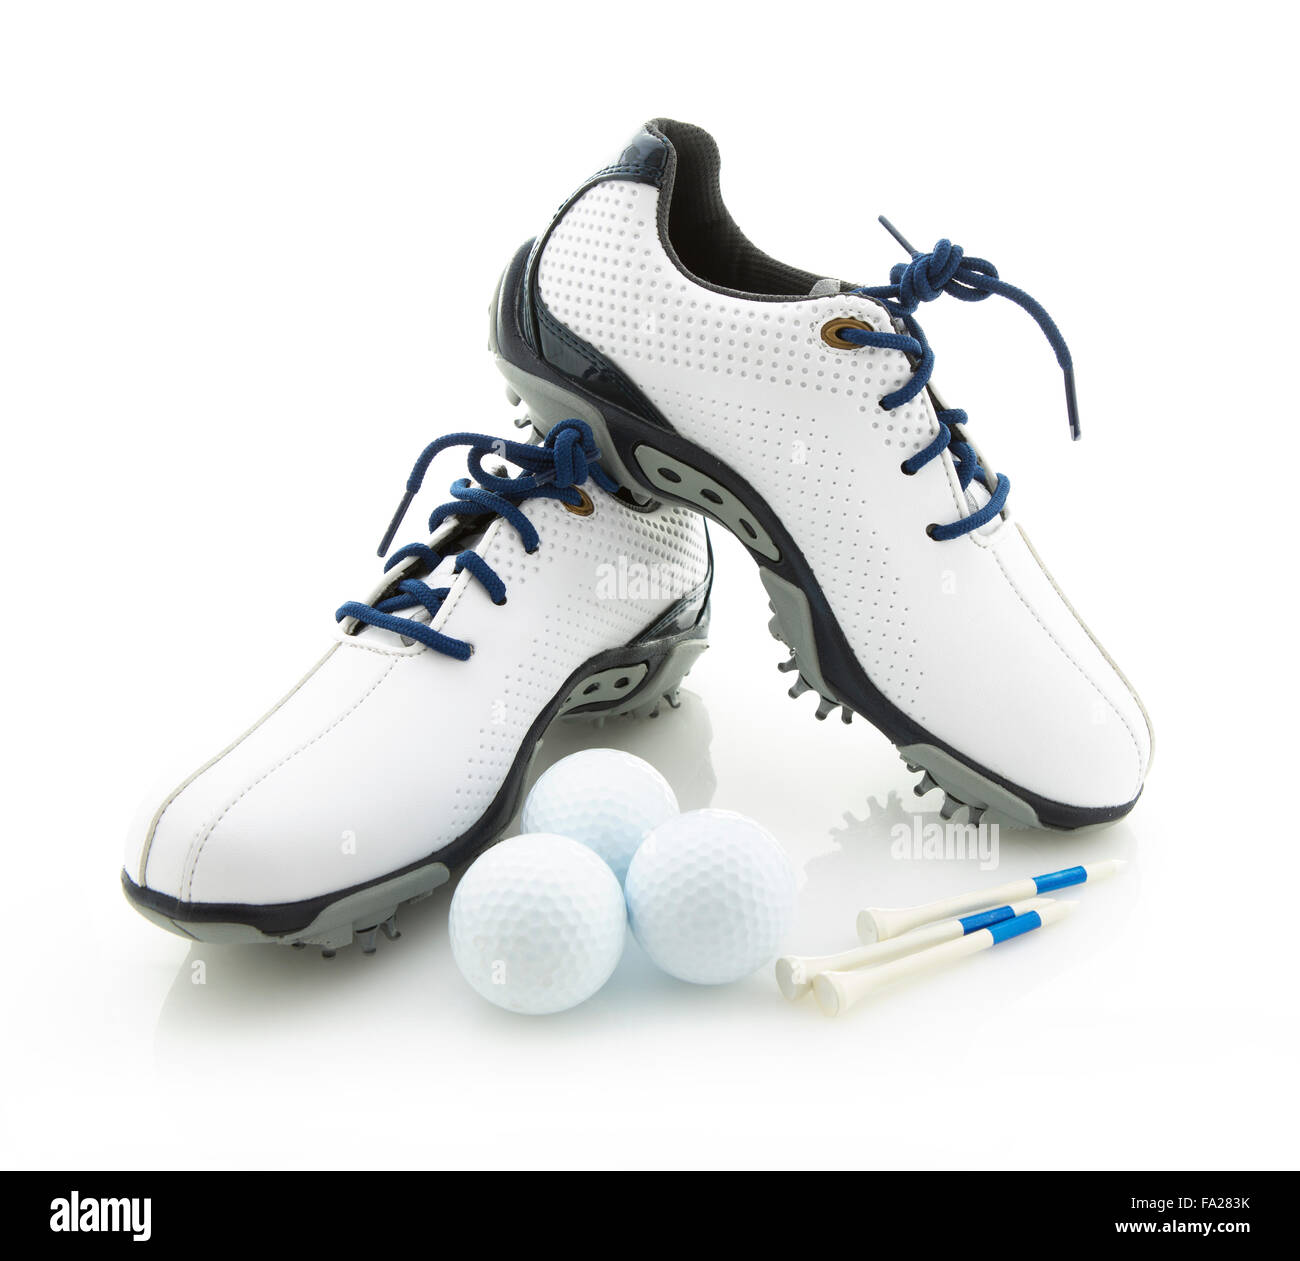 Modern Golf Shoes With Balls and Tees on a White Background - Stock Image